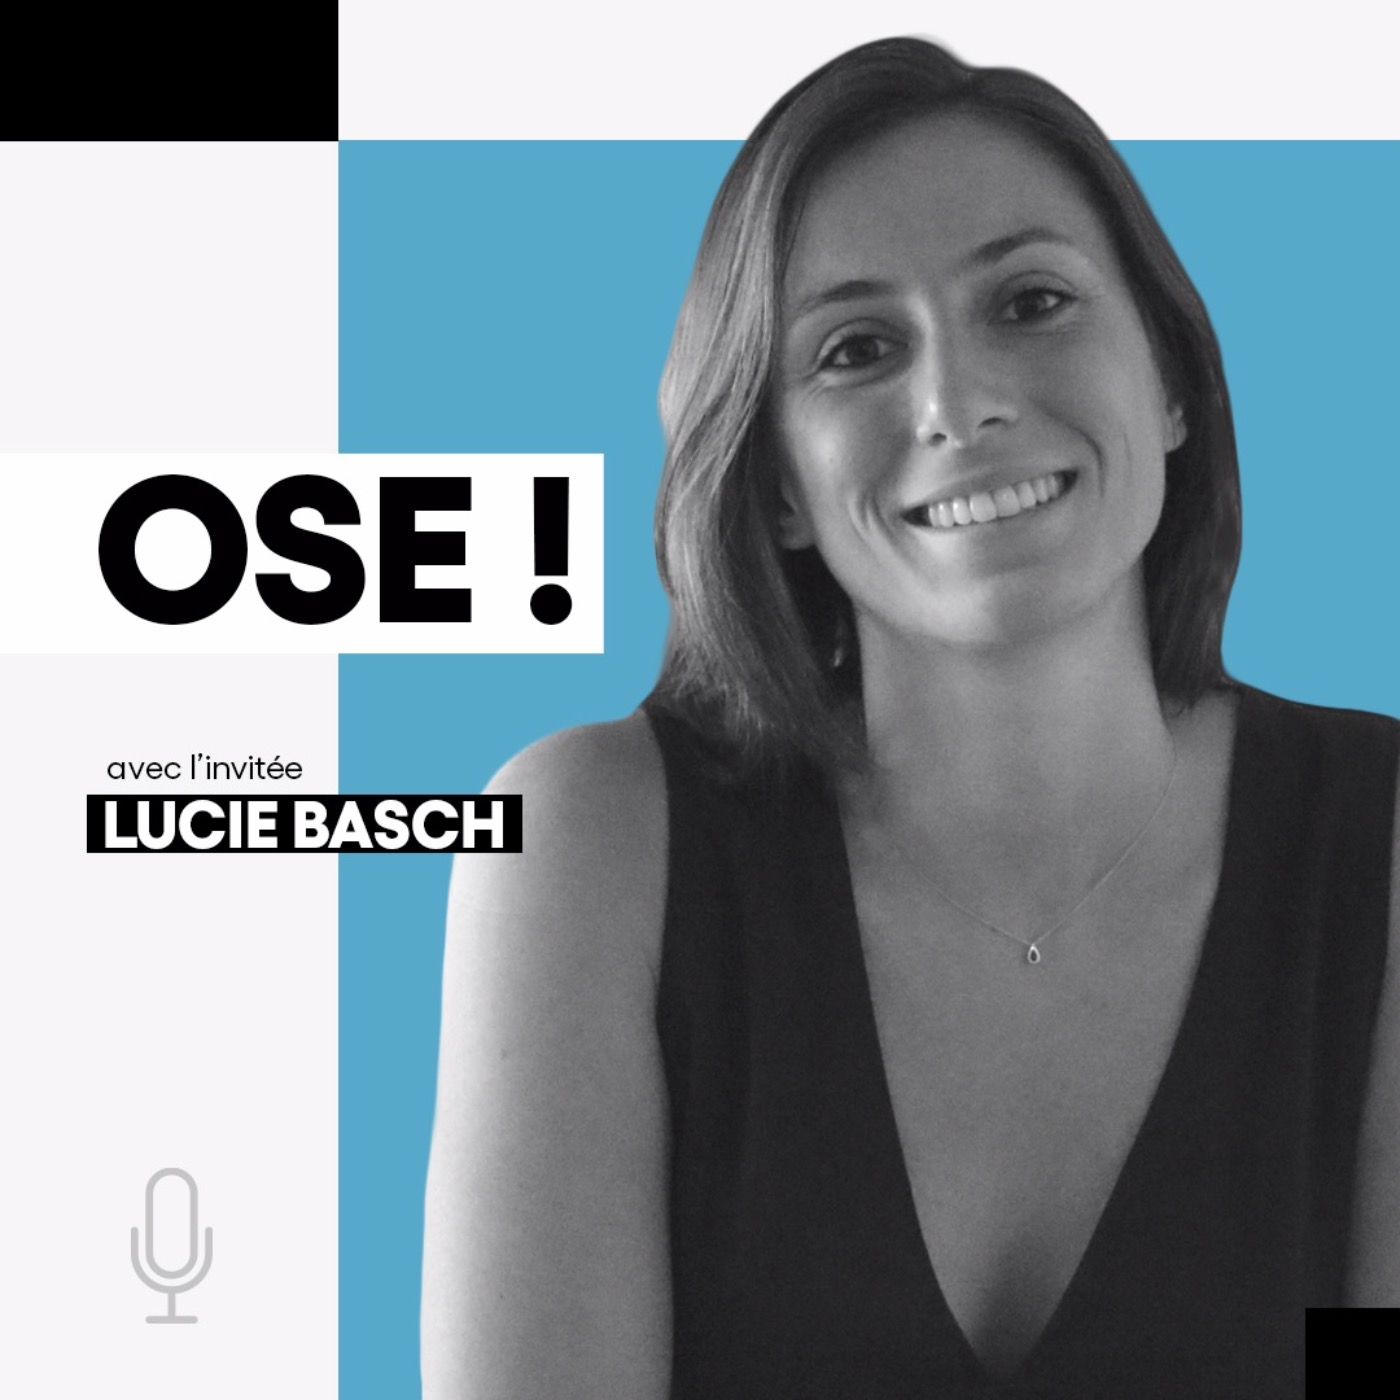 Lucie Basch, Entrepreneure, cofondatrice de Too Good To Go